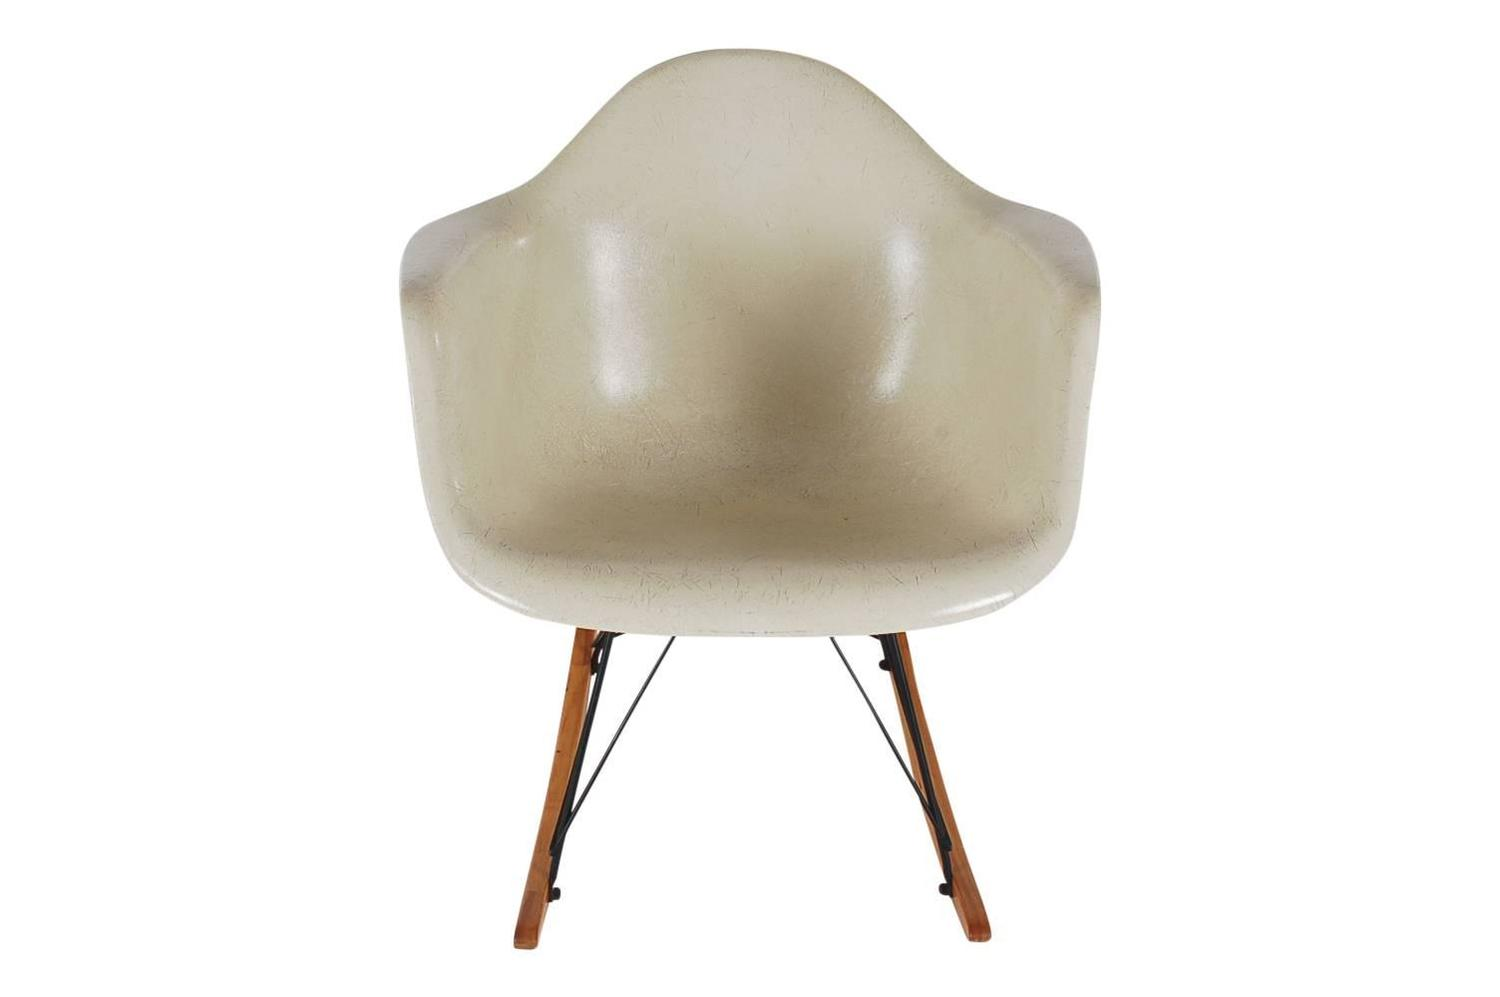 Mid Century Modern Herman Miller Original Rocking Chair By Charles Eames For